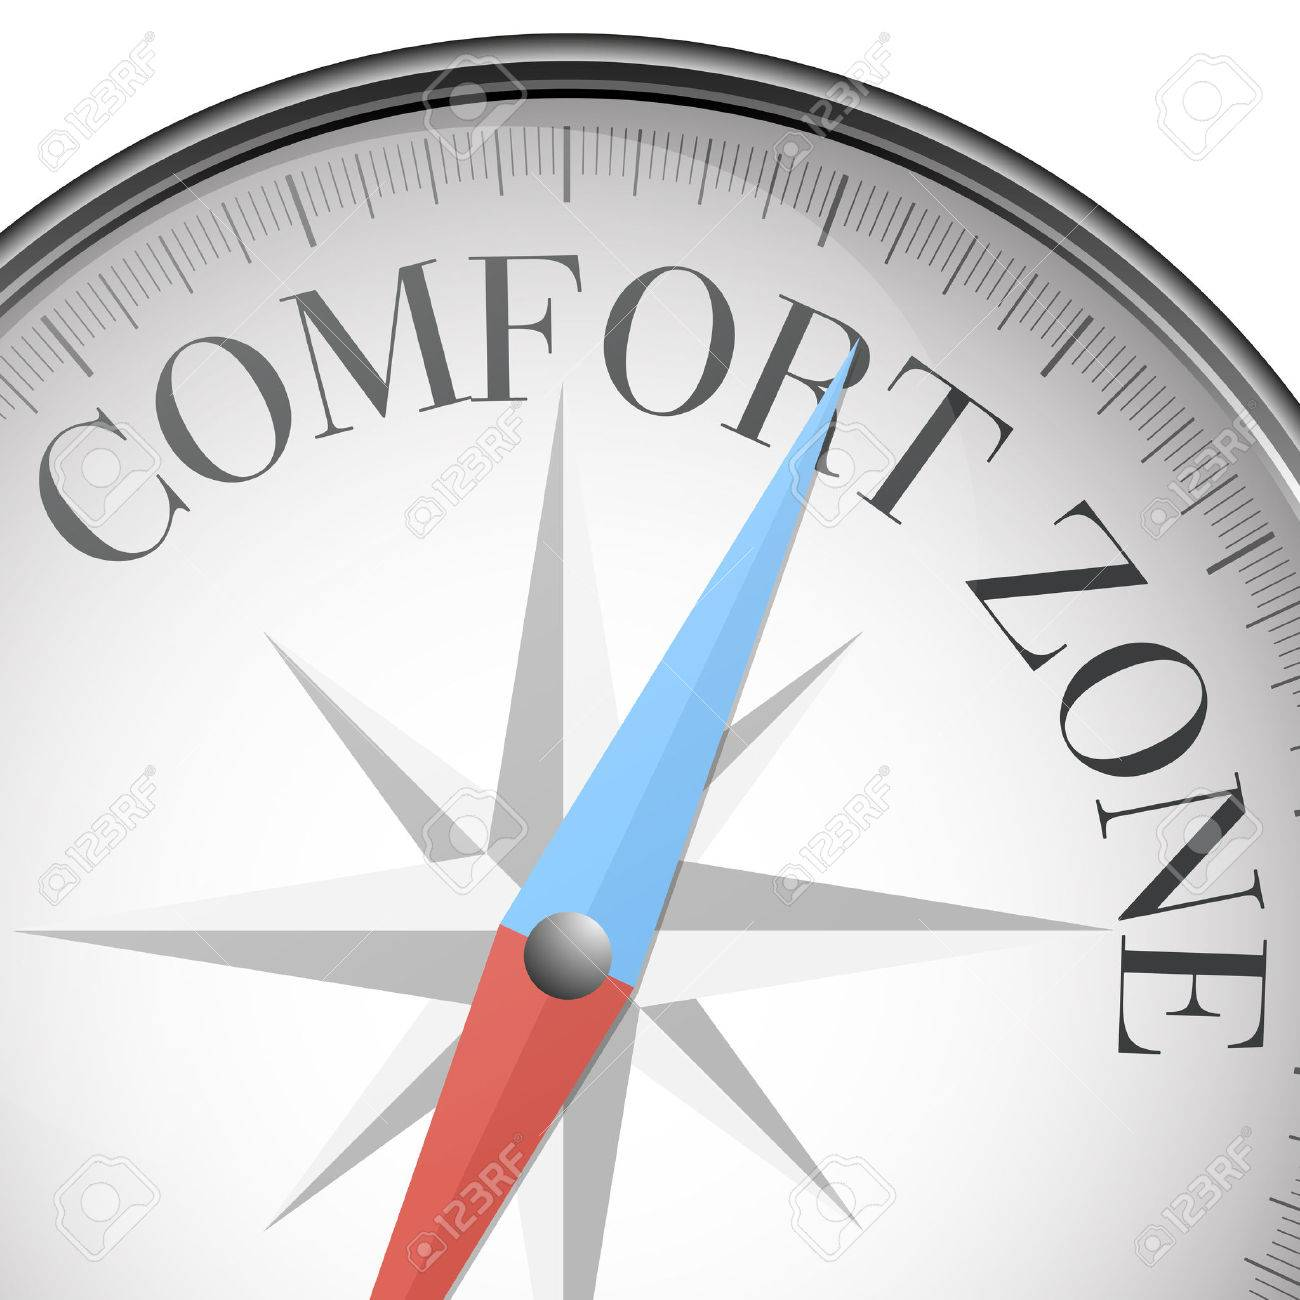 detailed illustration of a compass with comfort zone text, eps10 vector - 34509842